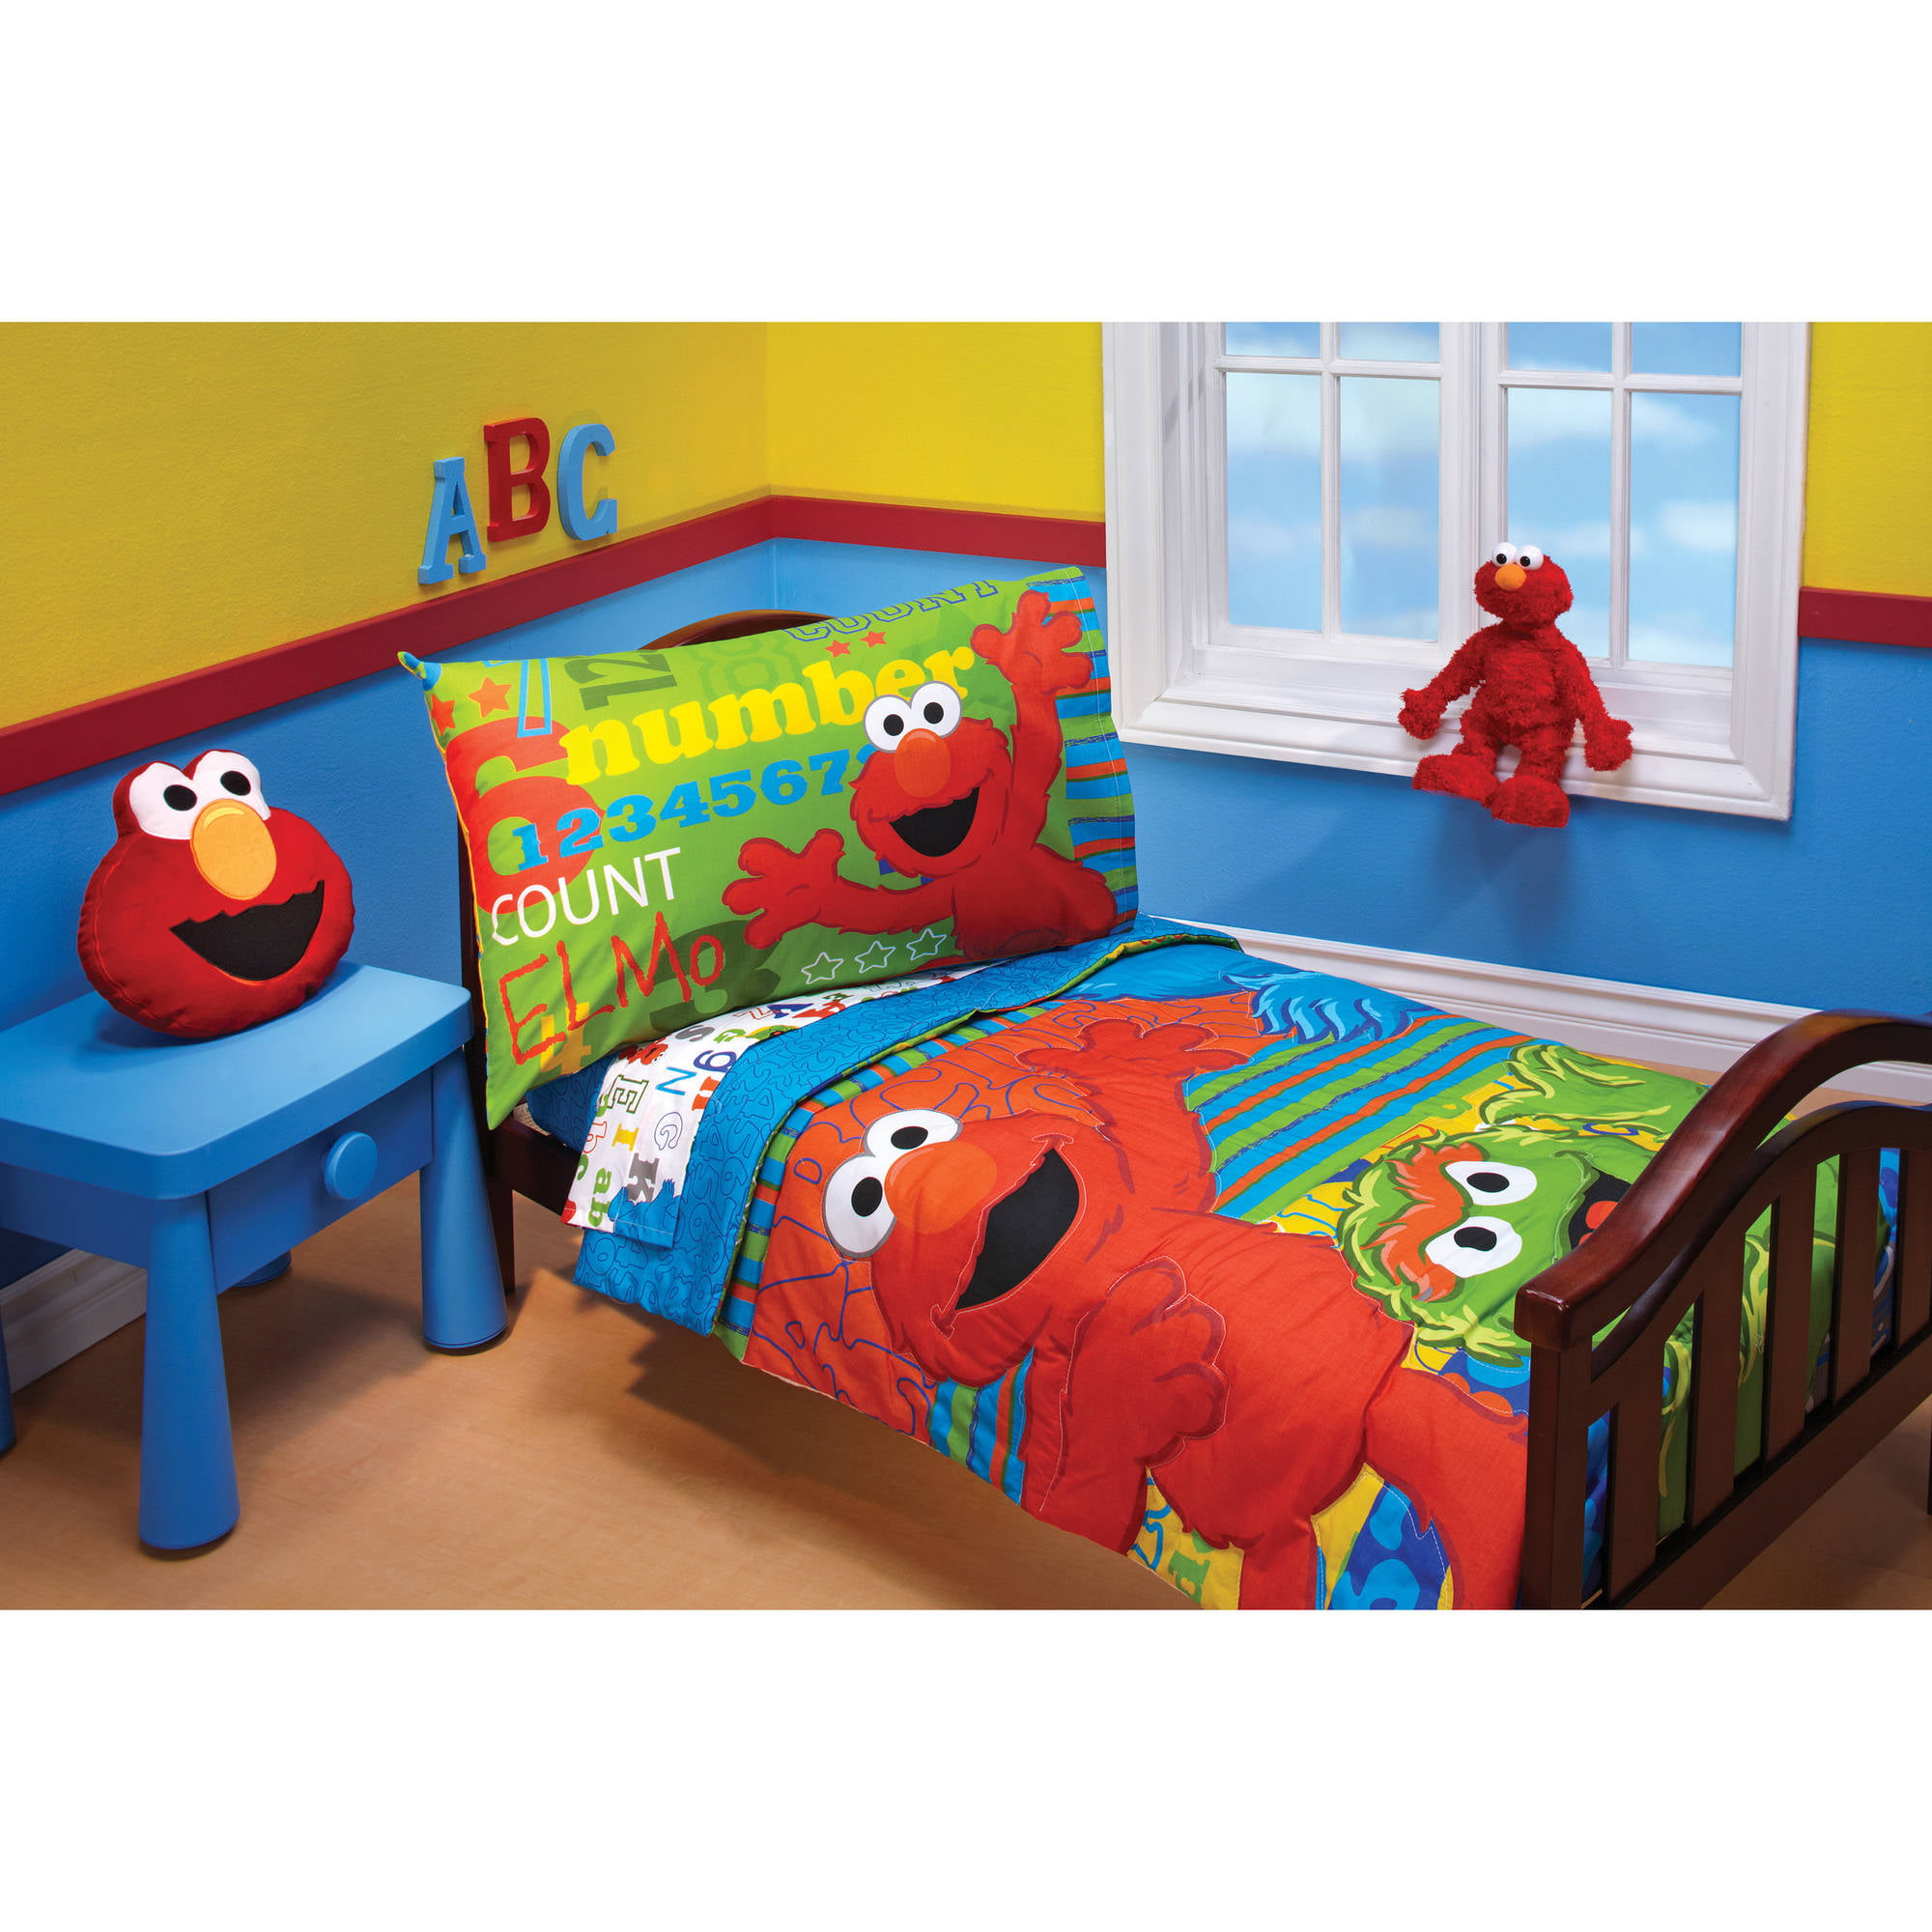 Merveilleux Sesame Street ABC123 4 Piece Toddler Bedding Set   Walmart.com